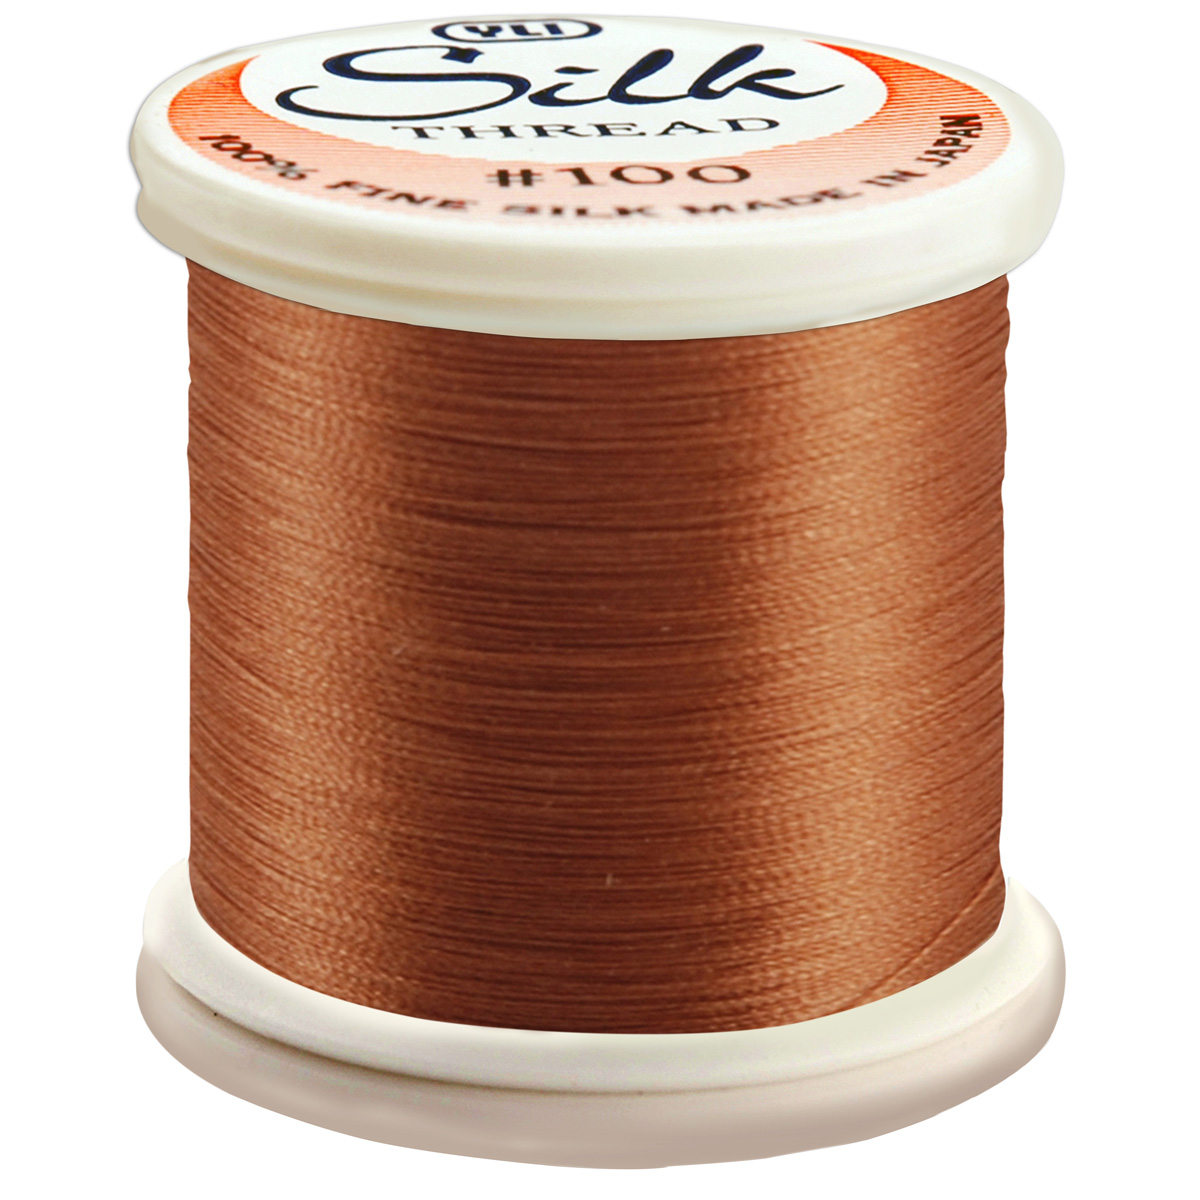 Silk Thread 100wt 200m - Light Cinnamon